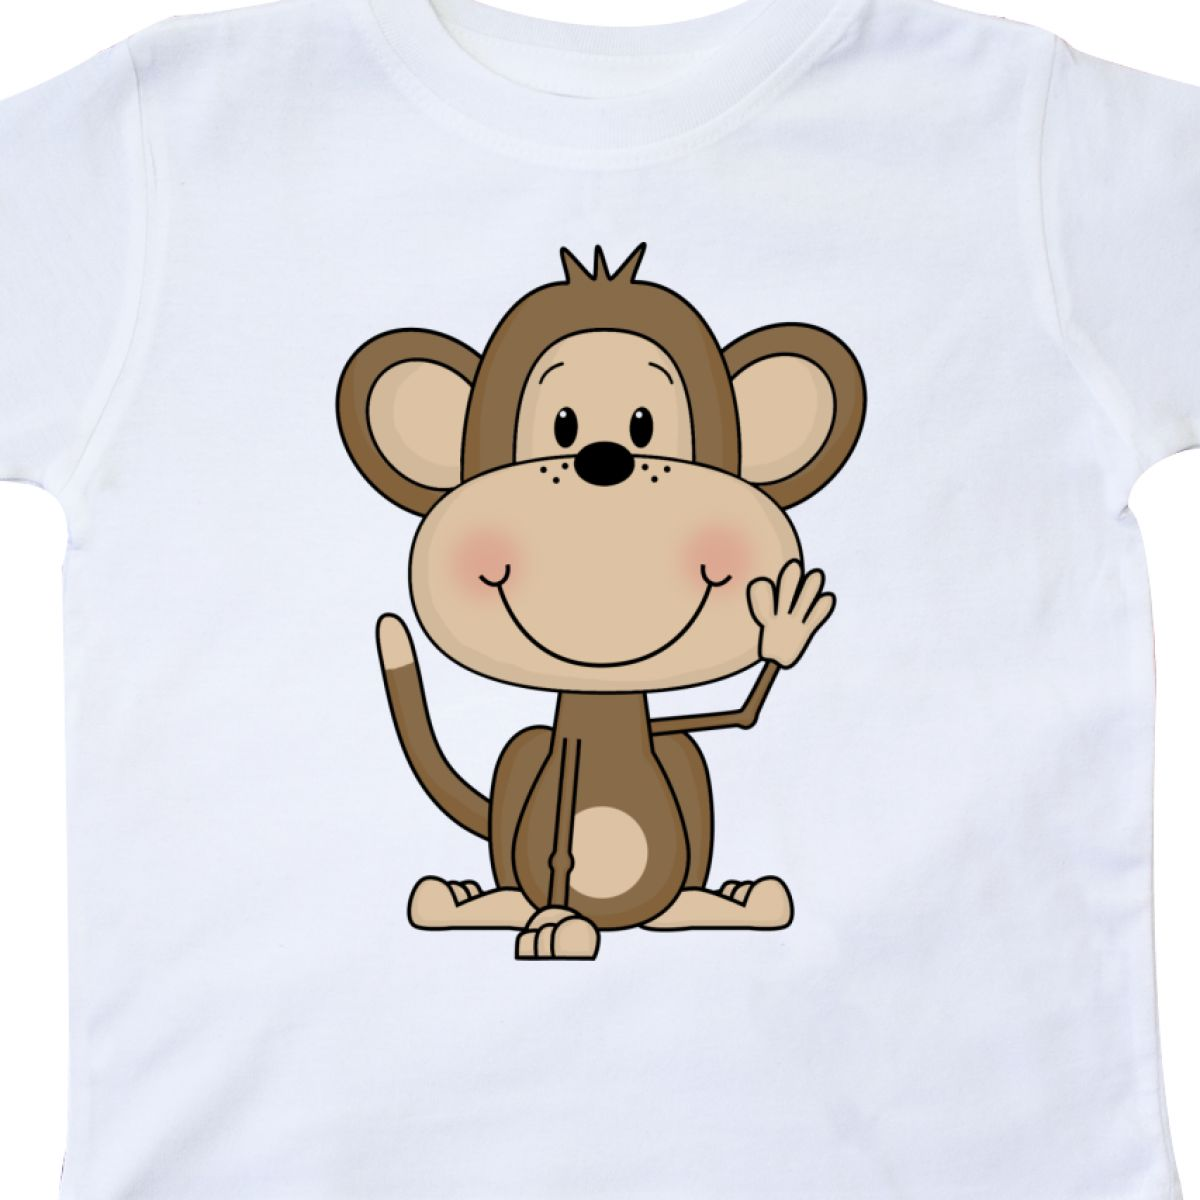 Inktastic-Monkey-Toddler-T-Shirt-Cute-Baby-Monkeys-Bananas-Giraffe-Acrobats-Of thumbnail 12